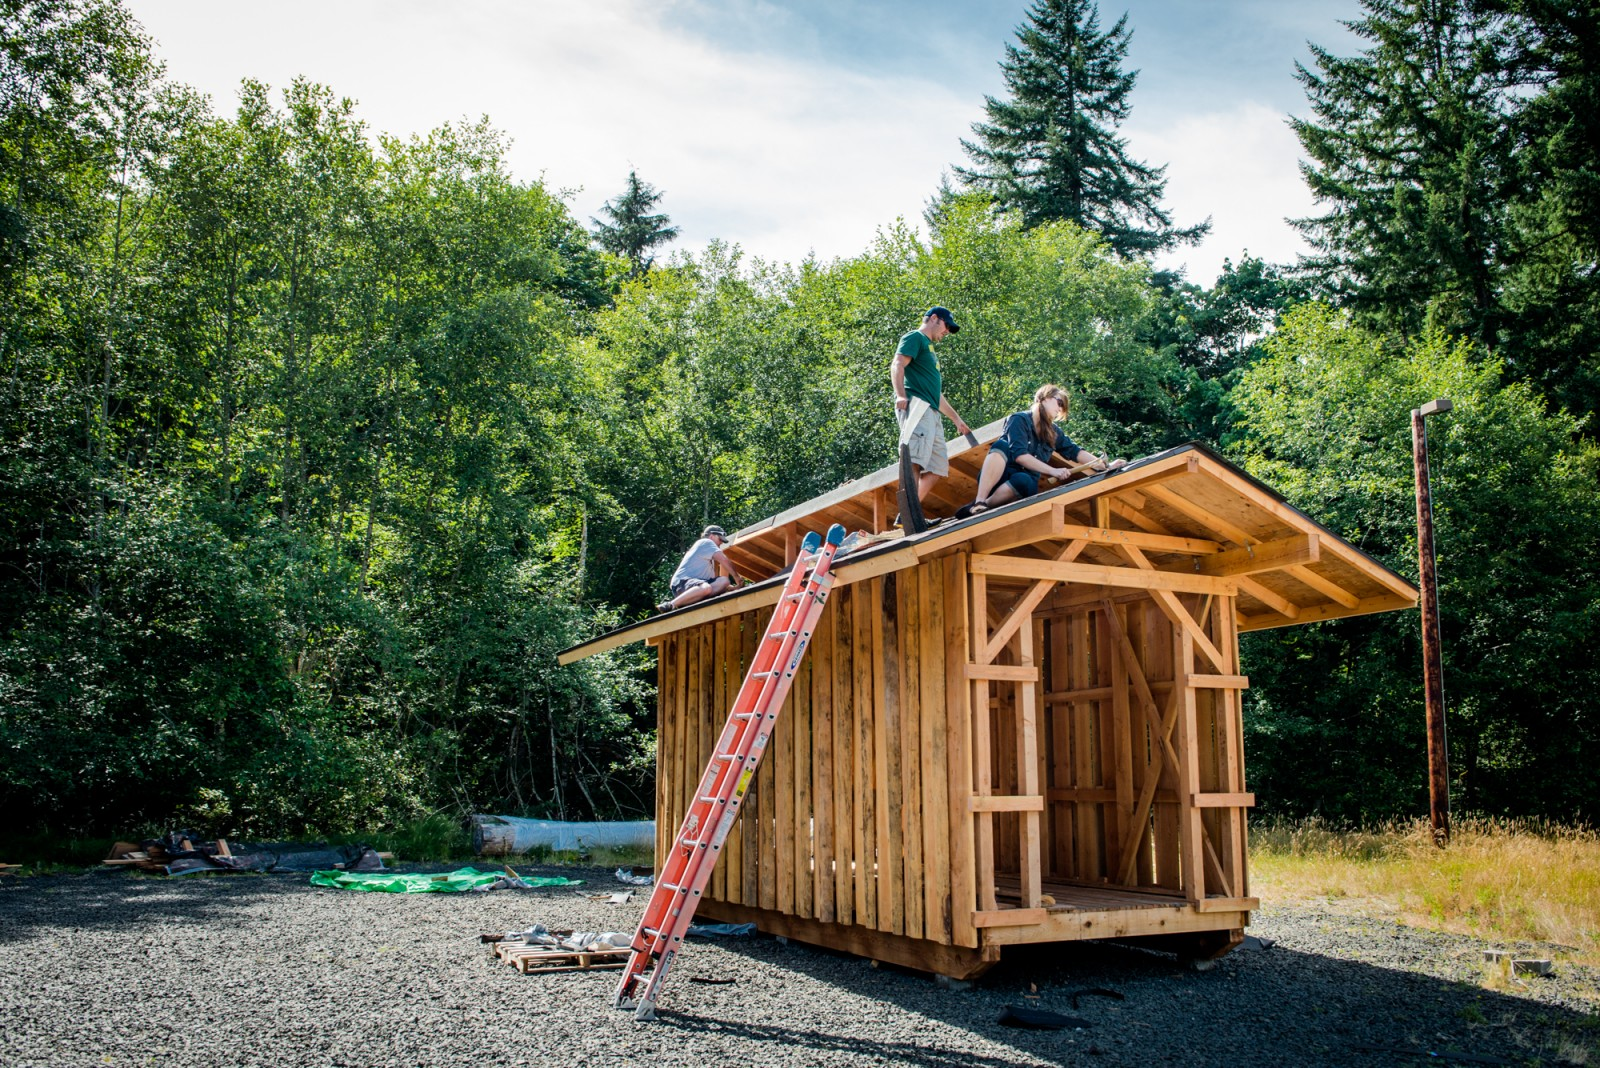 Students from the 2013-14 program Green Materials volunteer to build a drying shed designed by the class.